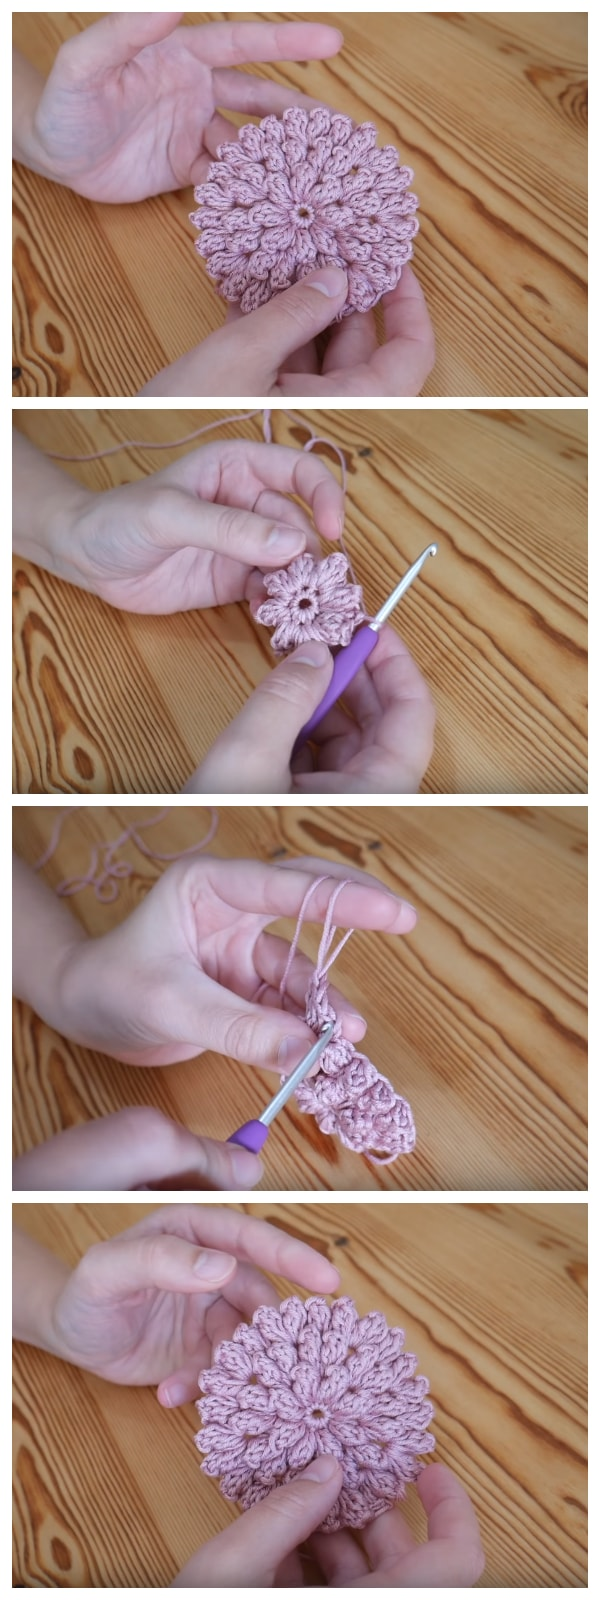 These gorgeous Crochet Popcorn Stitch Flowers are amazing, you can use this tutorial to make small flowers but also to continue to make it as large as you like for cushions etc.